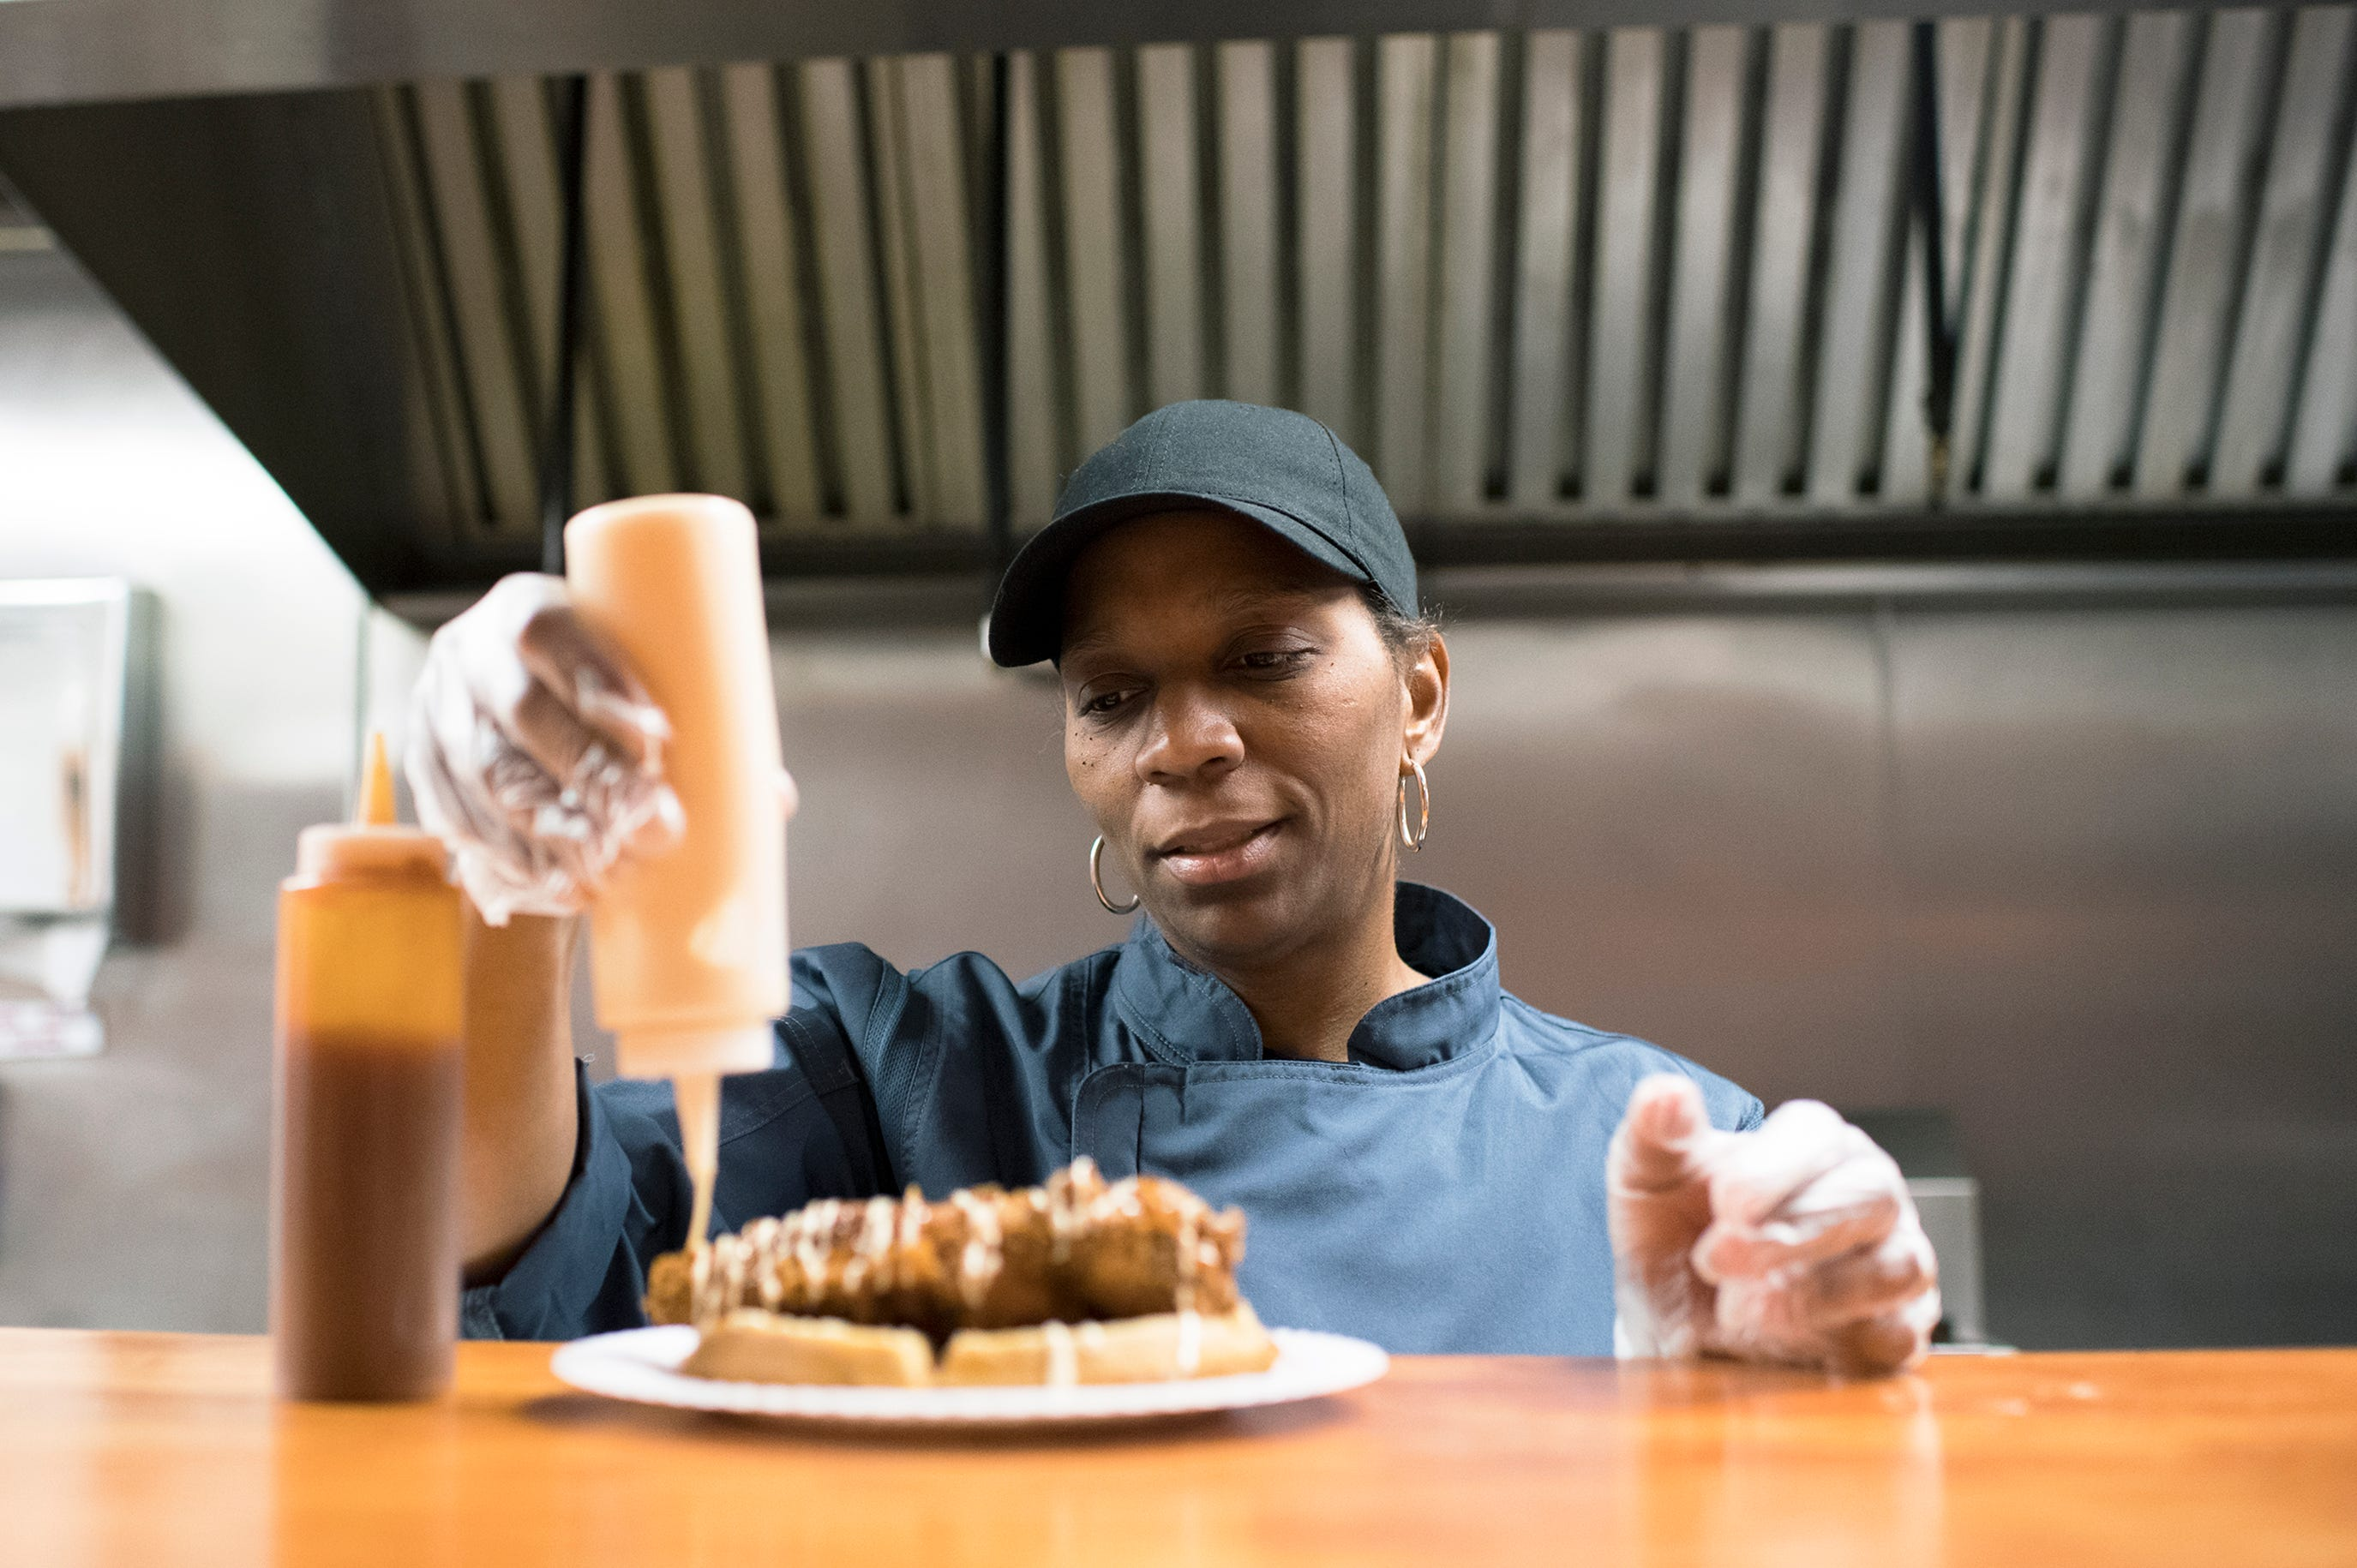 Nancy Miller, chef and owner of Taste of SOUL in Burlington City, N.J., prepares a chicken and sweet potato waffle dish. She's adding the French vanilla cream to the popular dish.